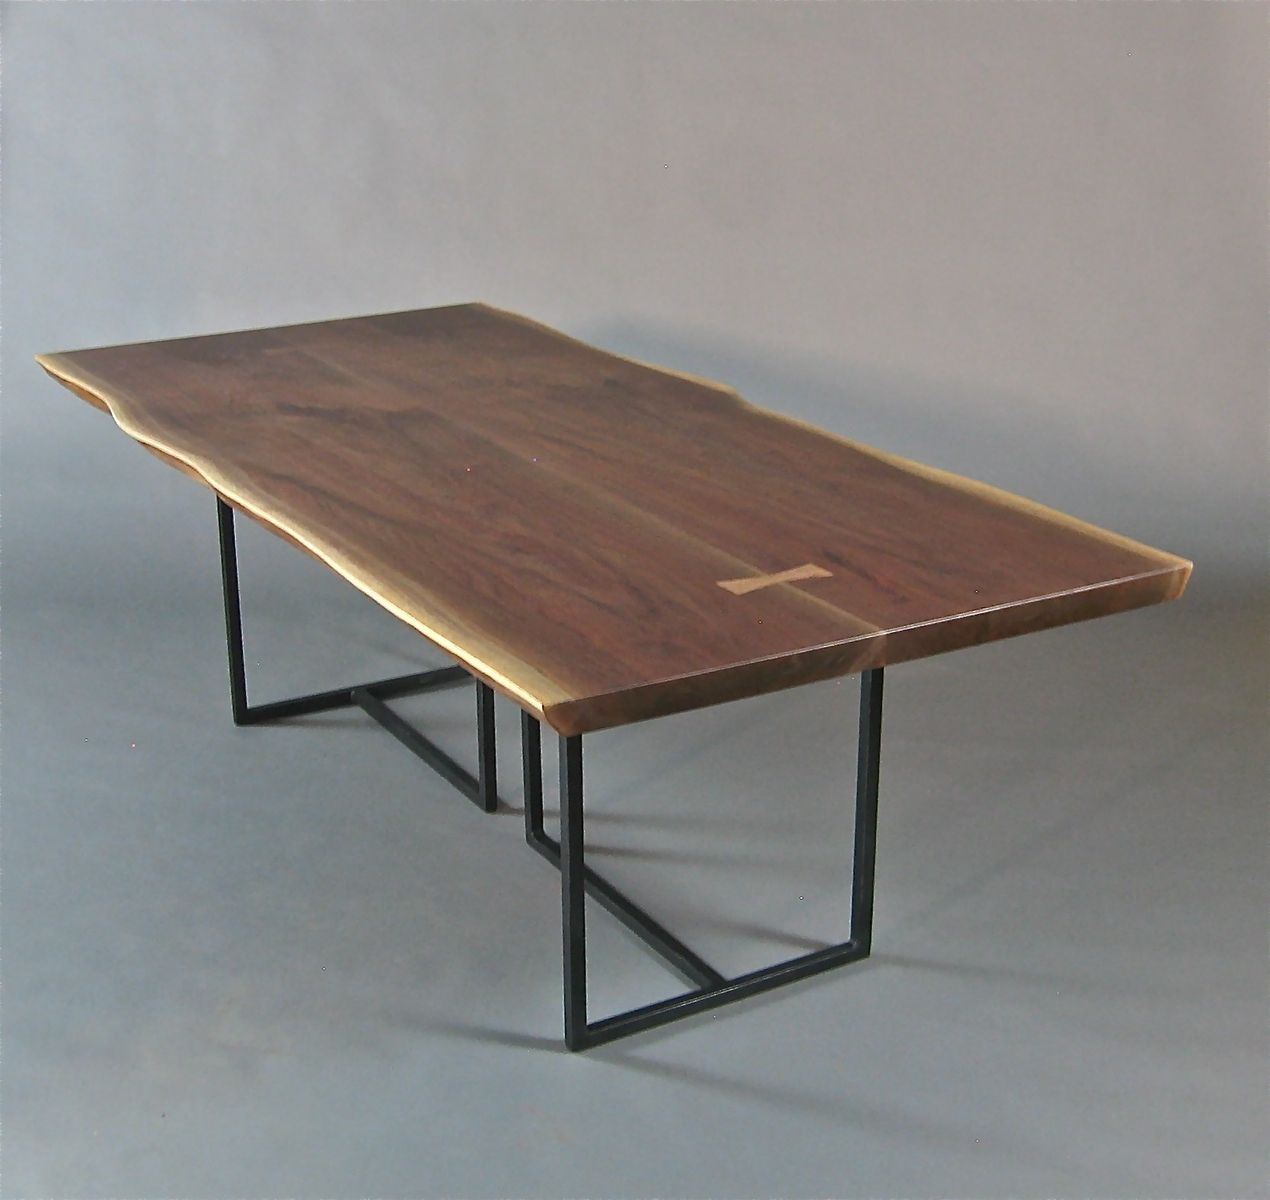 live edge tables | Handmade Walnut Slab Live Edge Dining Table. by ...